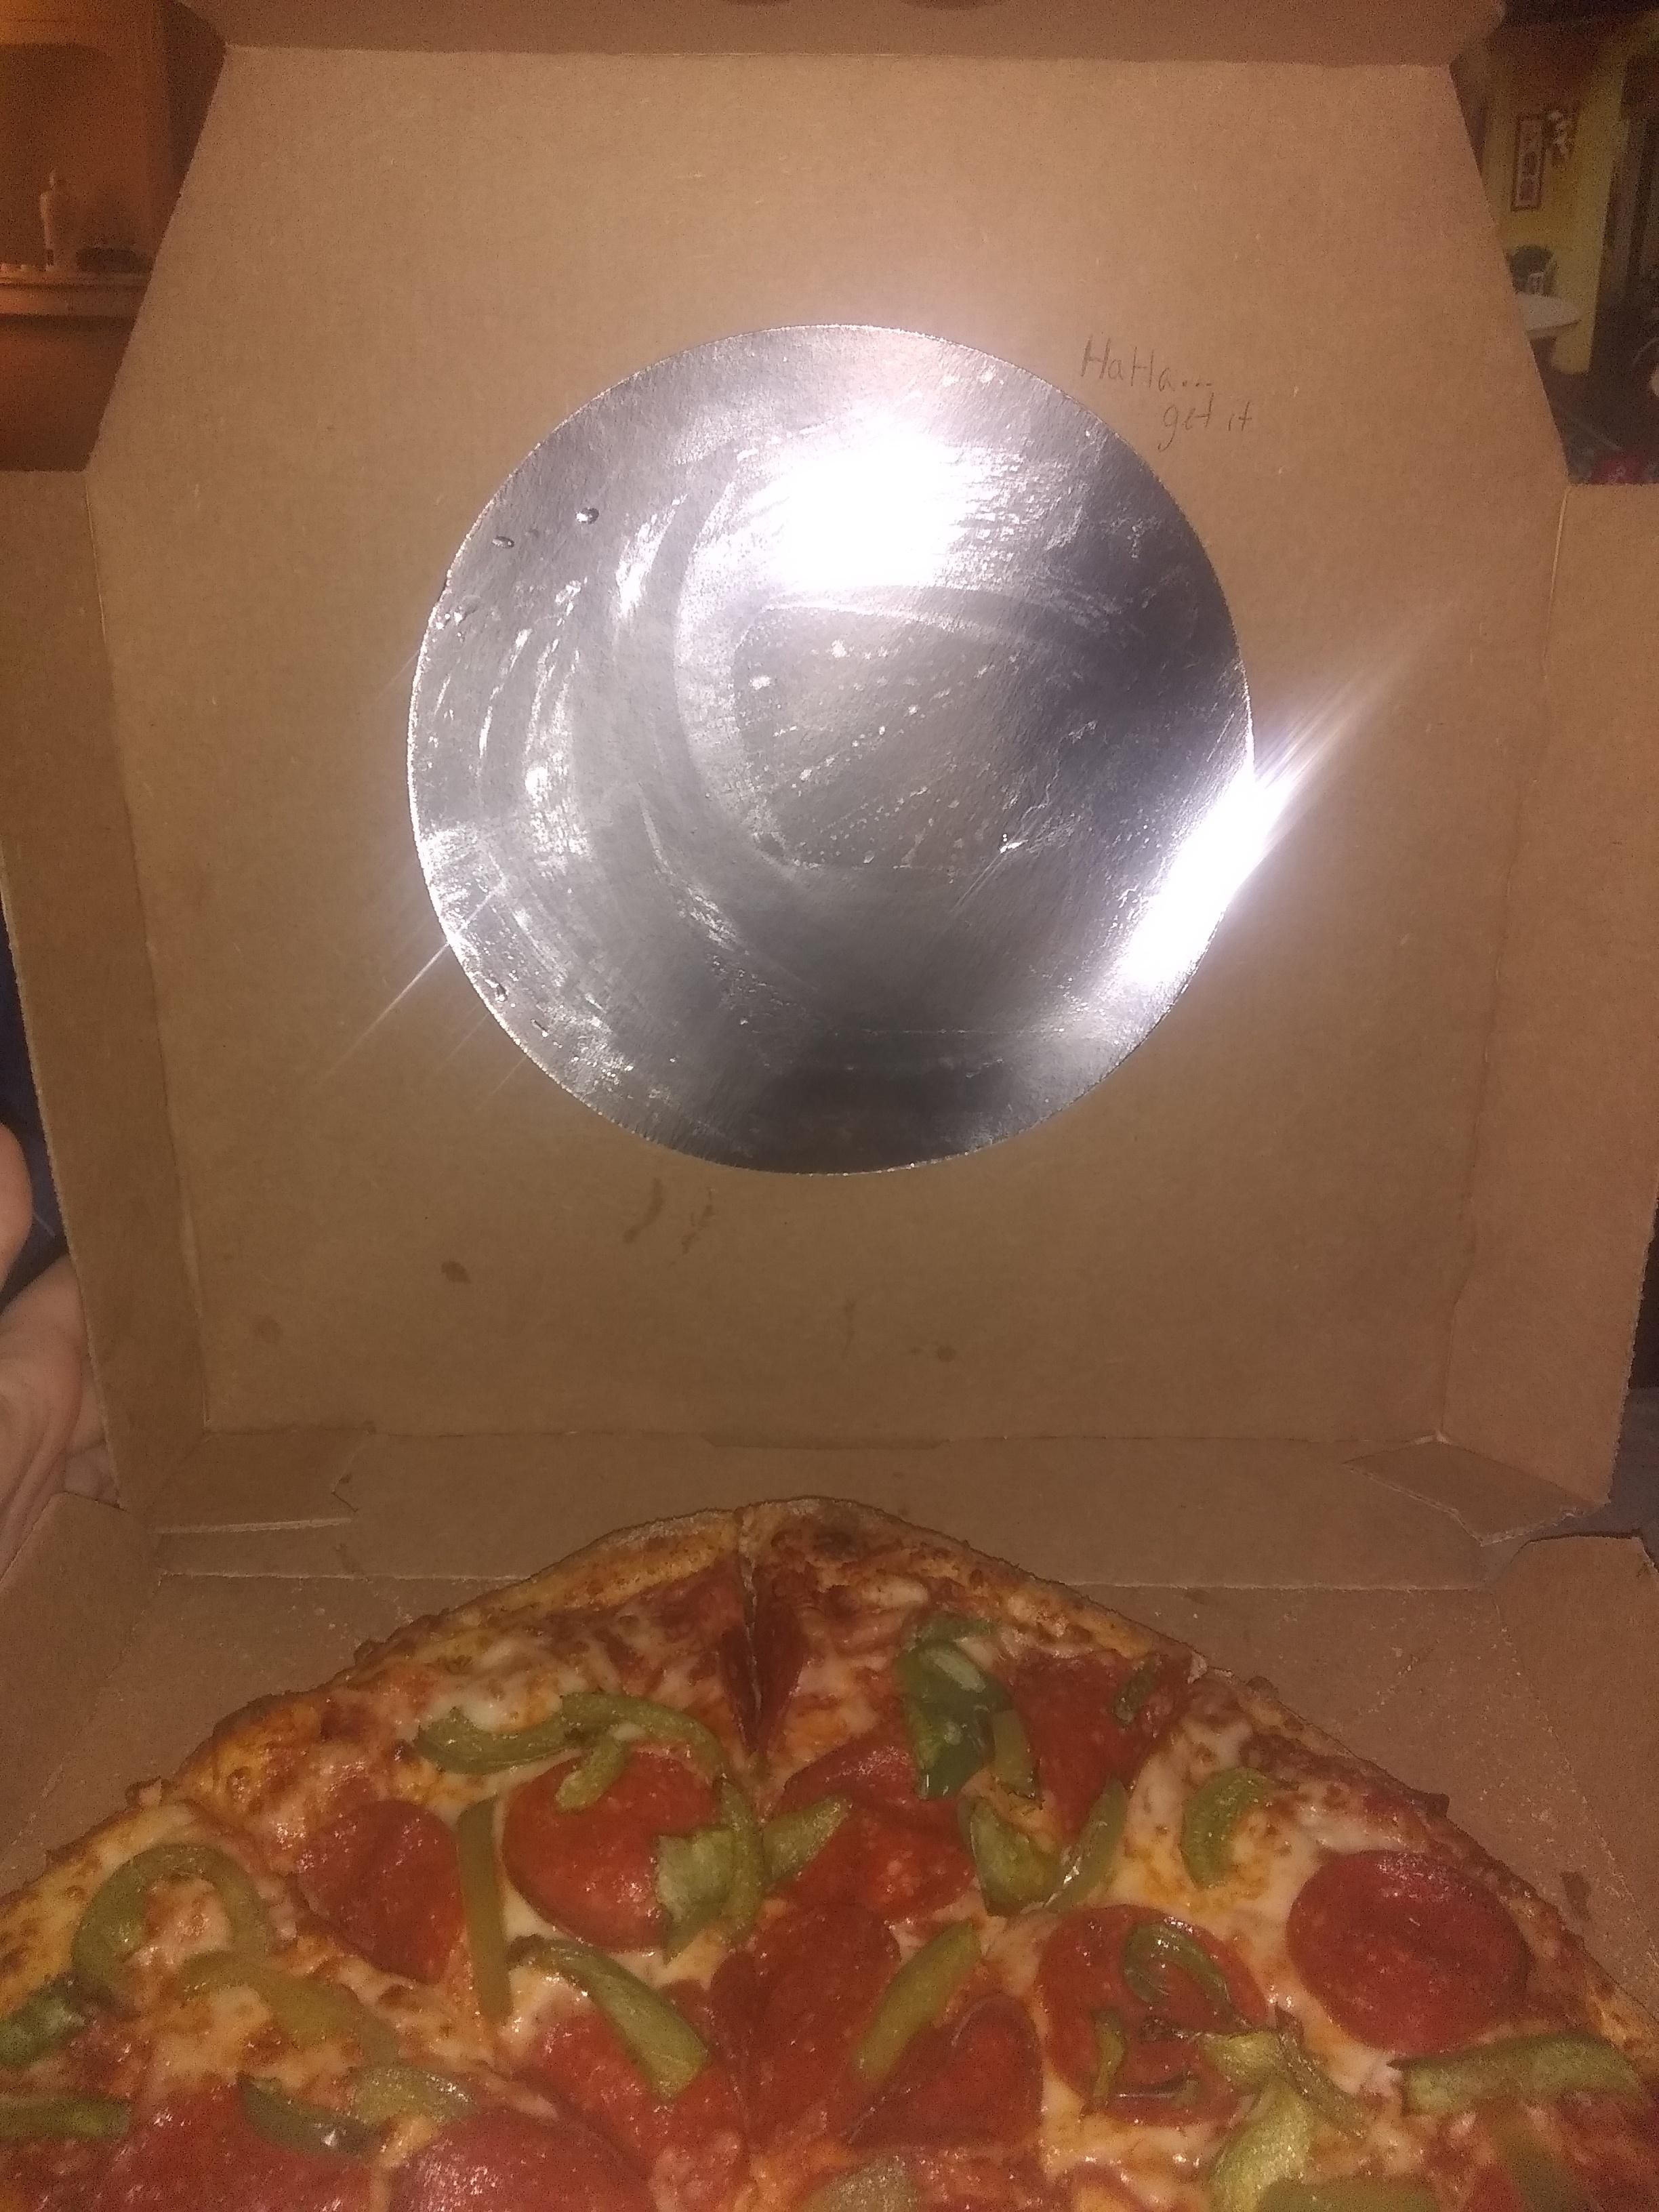 Told Domino's to put a joke on the box..